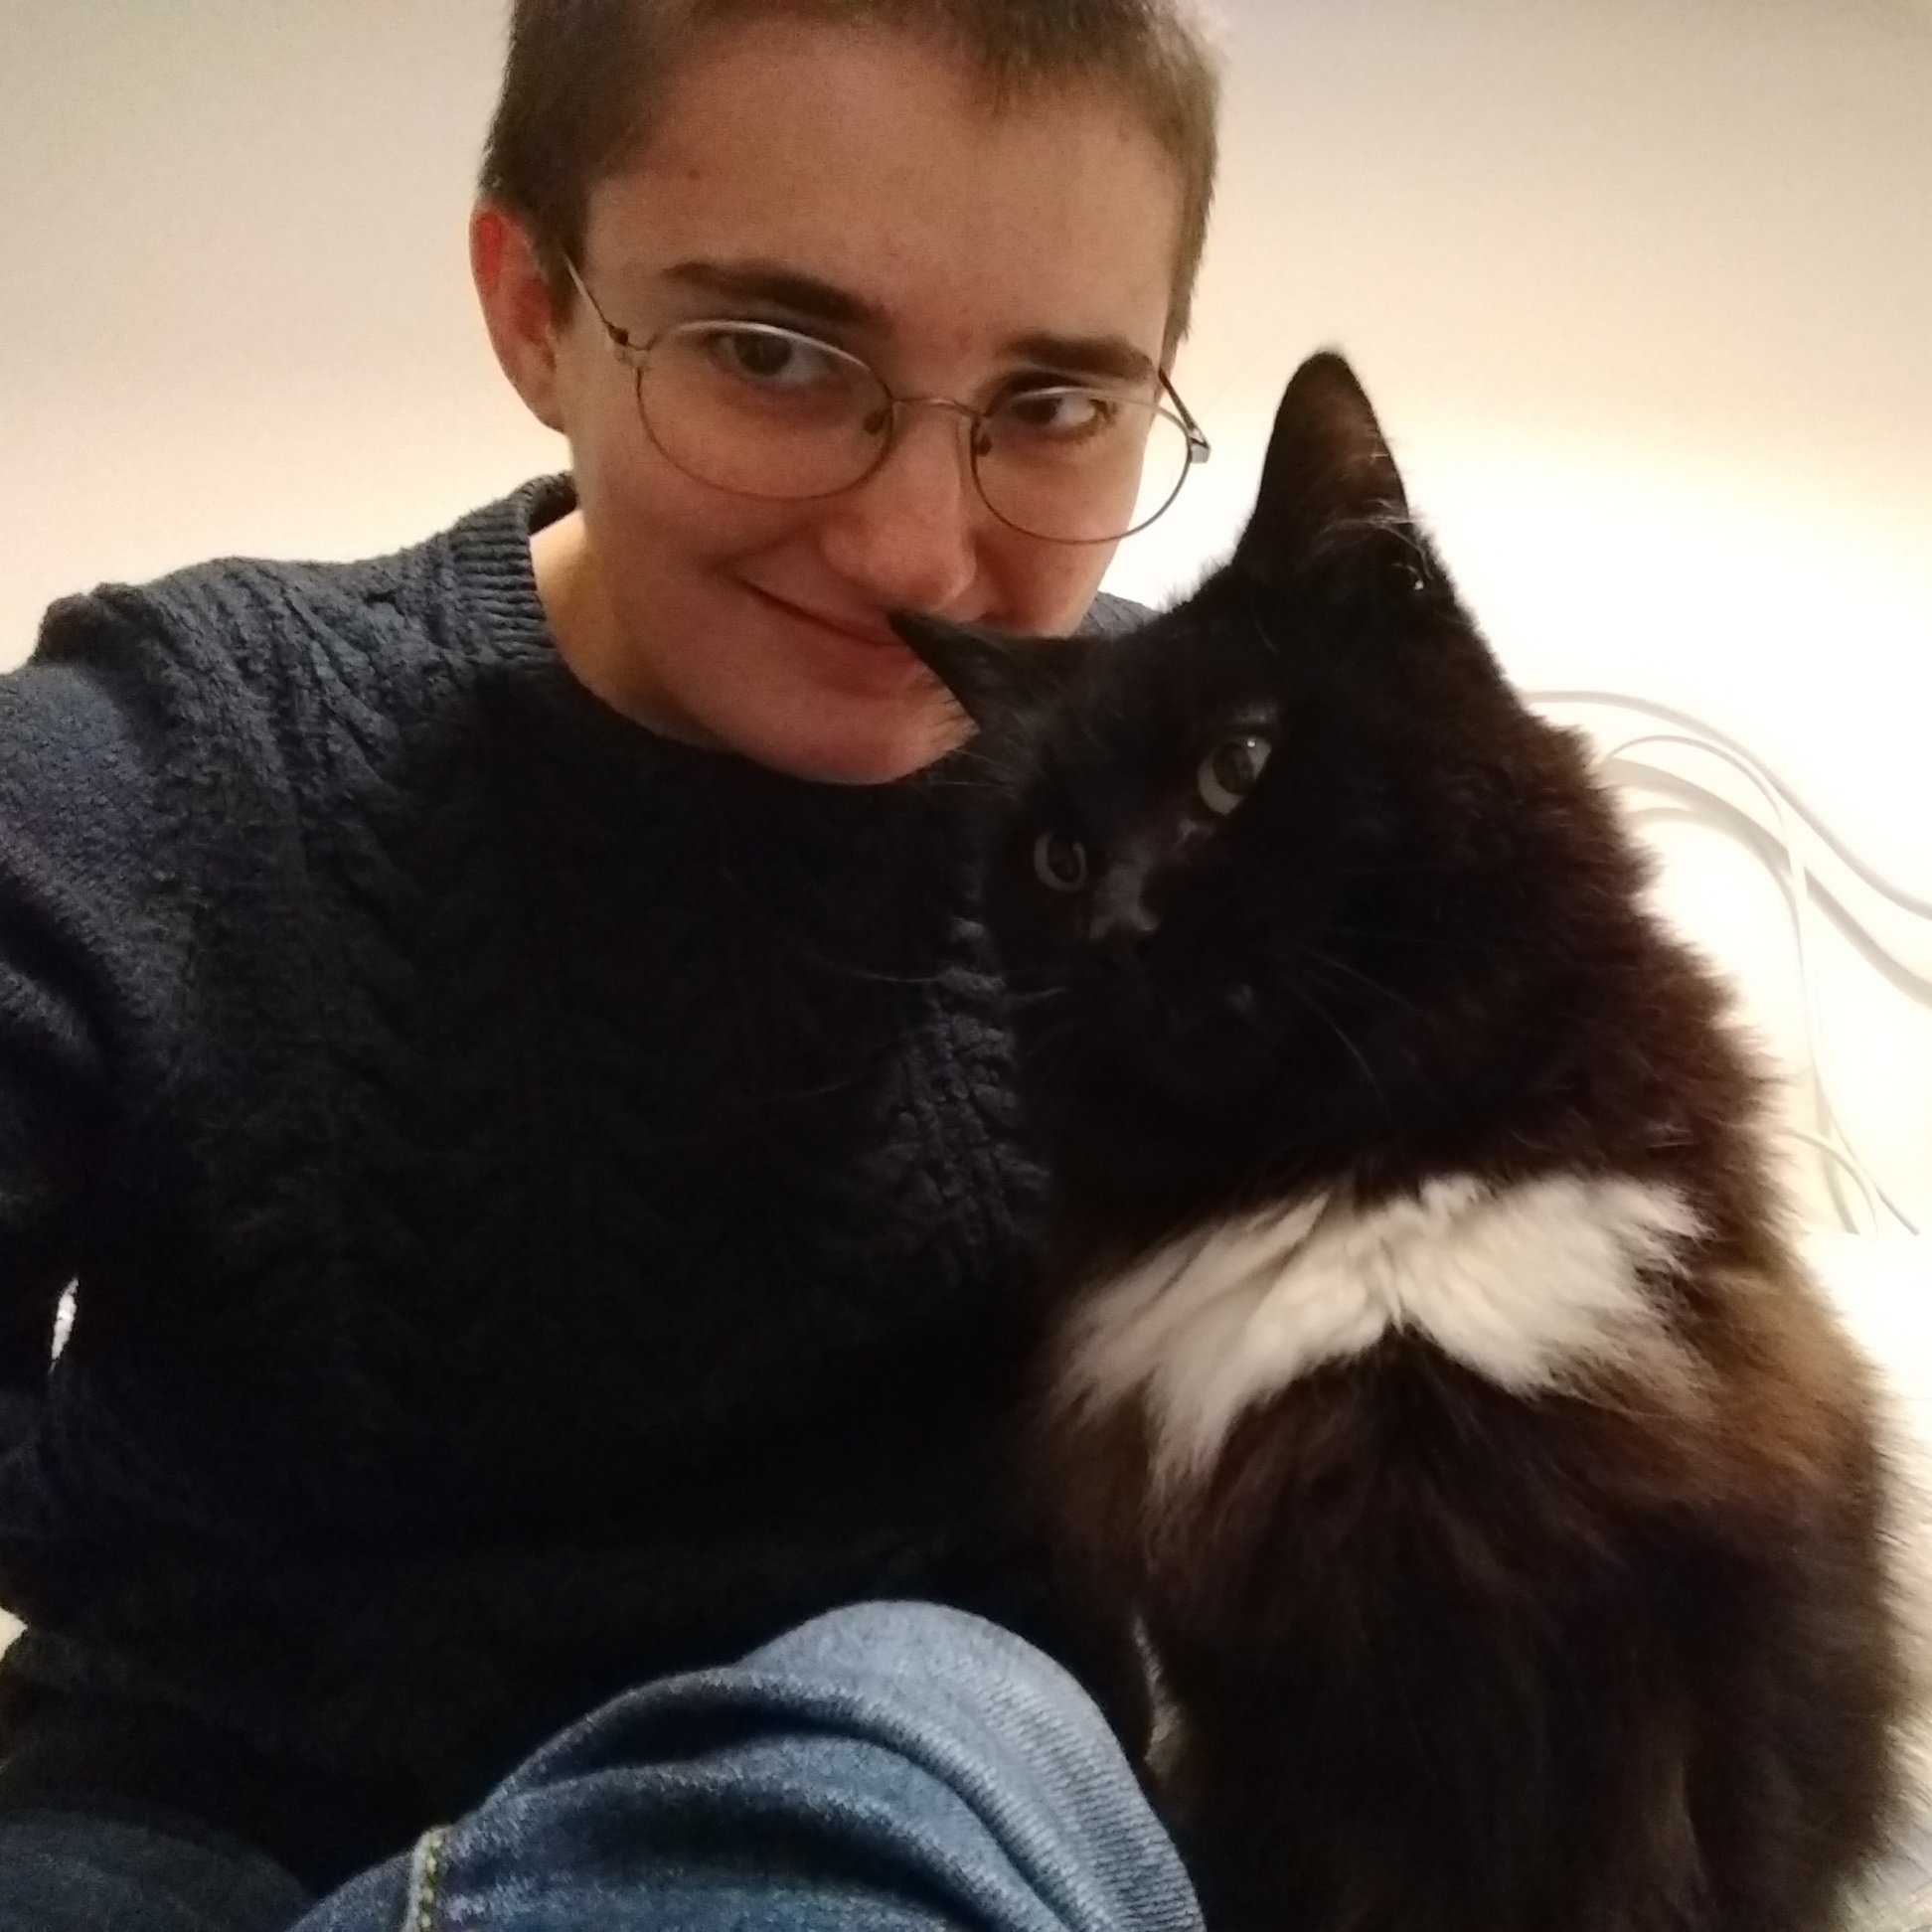 A selfie of me with a gleeful expression, accompanied by a very fluffy black and white cat.